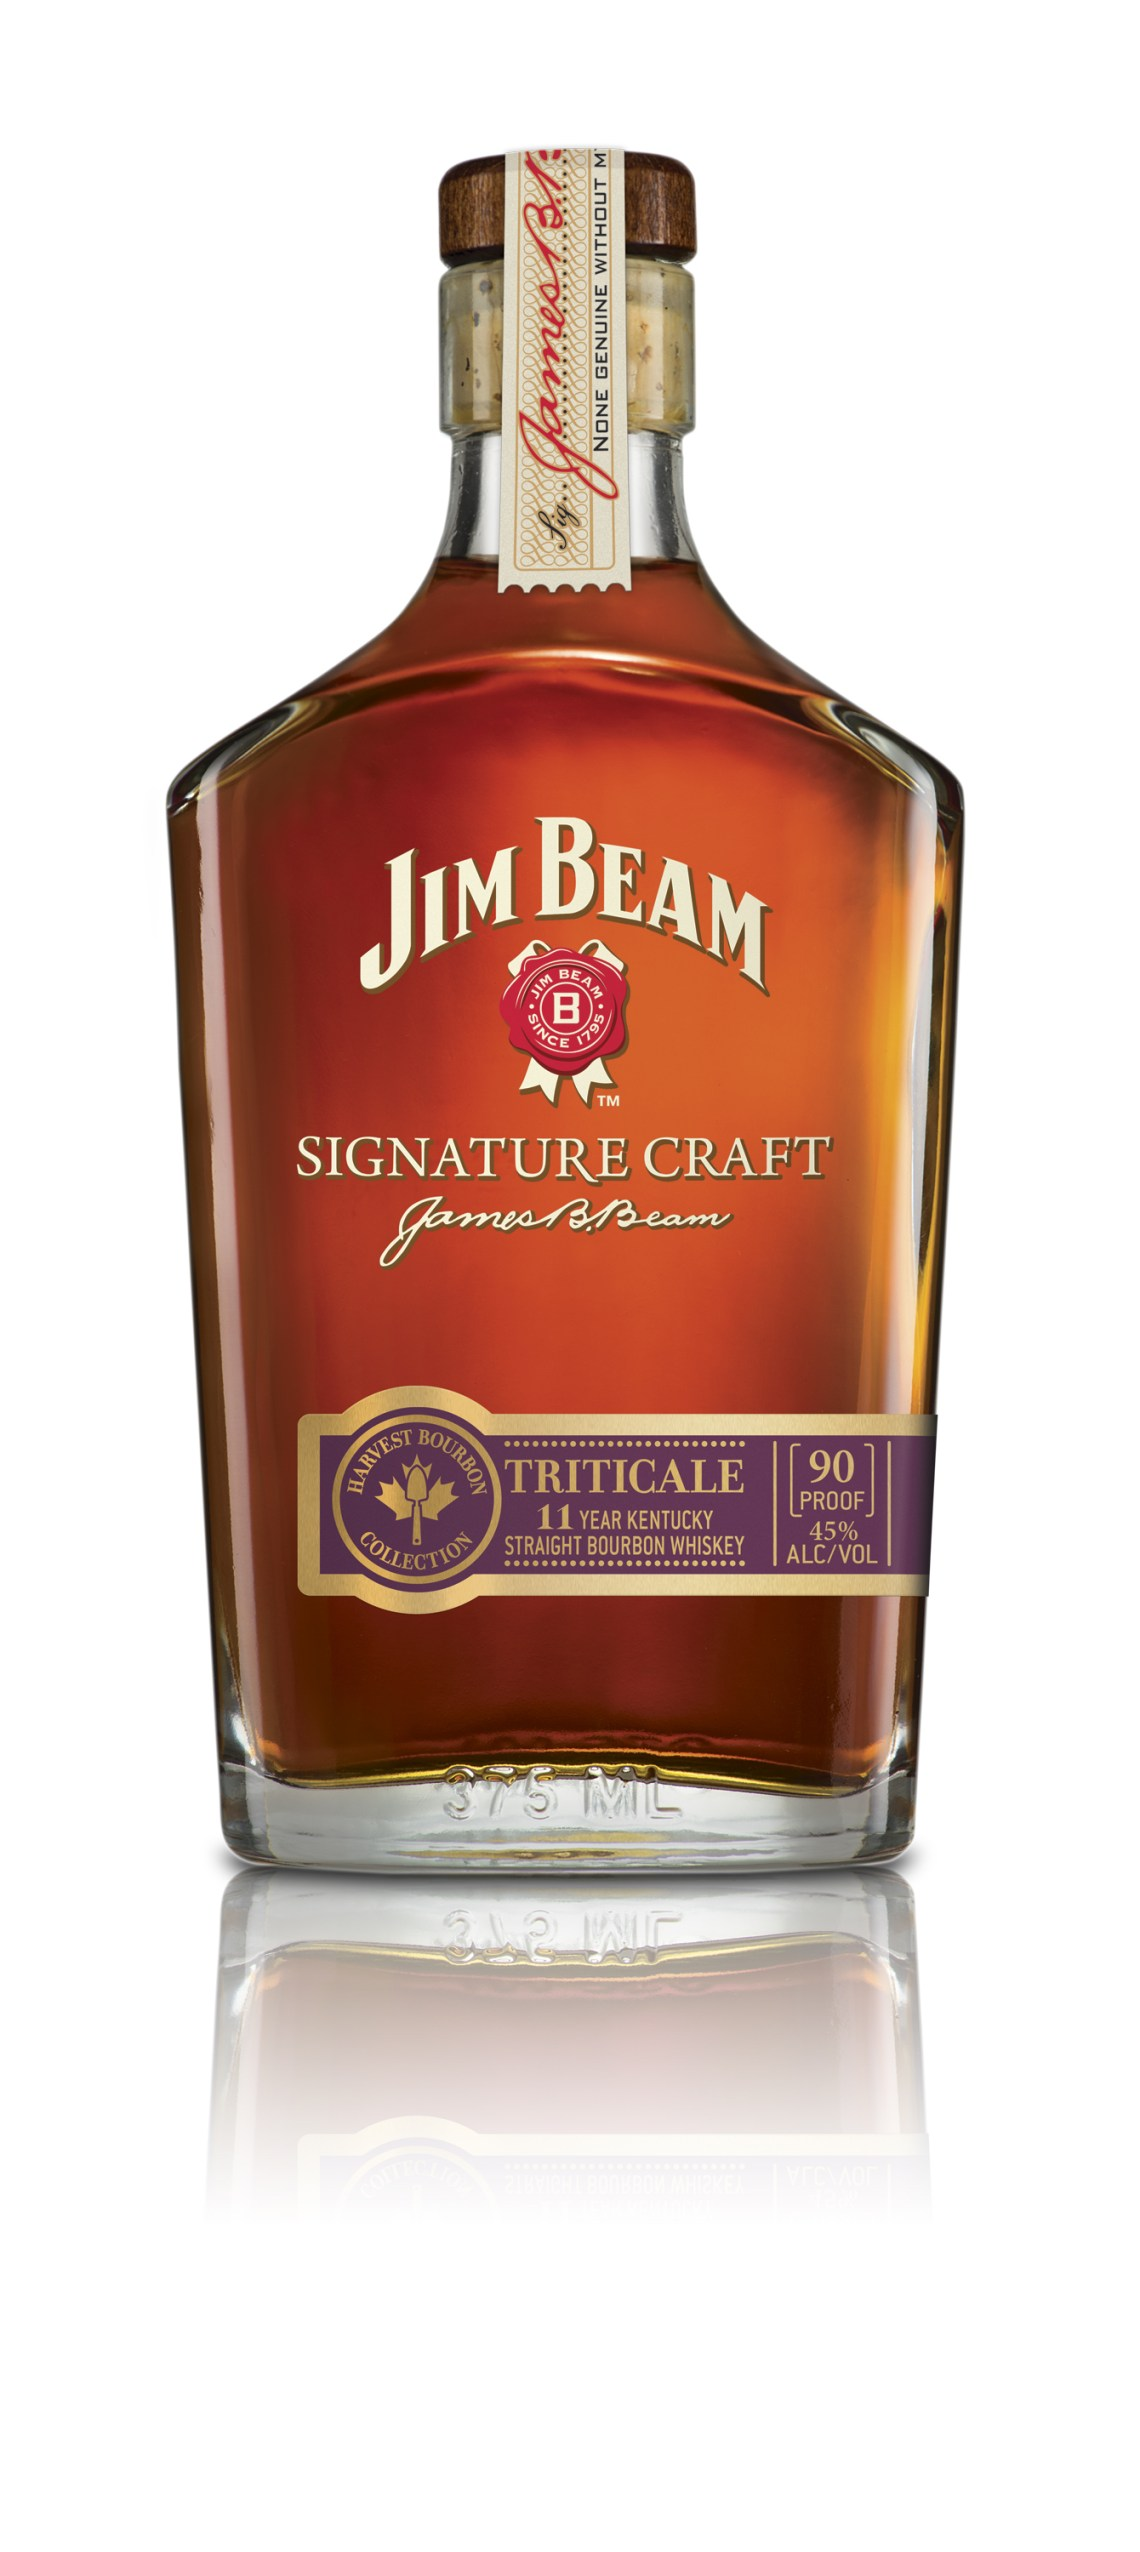 Jim Beam Signature Craft Harvest Bourbon Collection Triticale